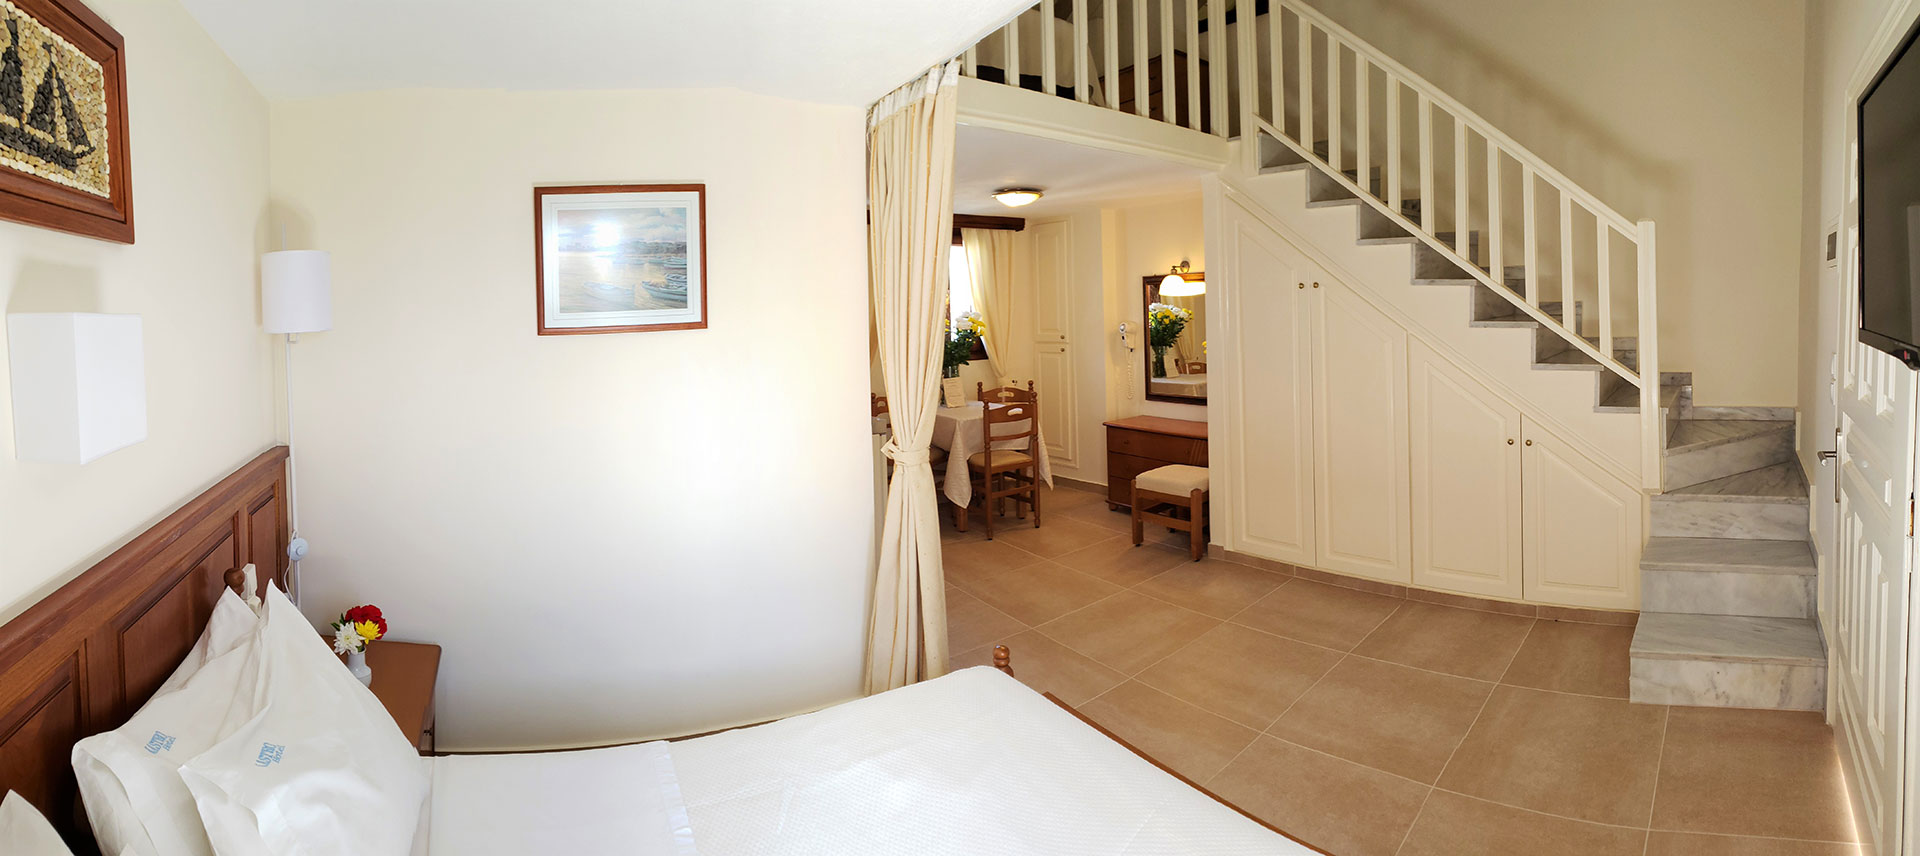 Kastro Hotel Spetses Apartments for 4 persons